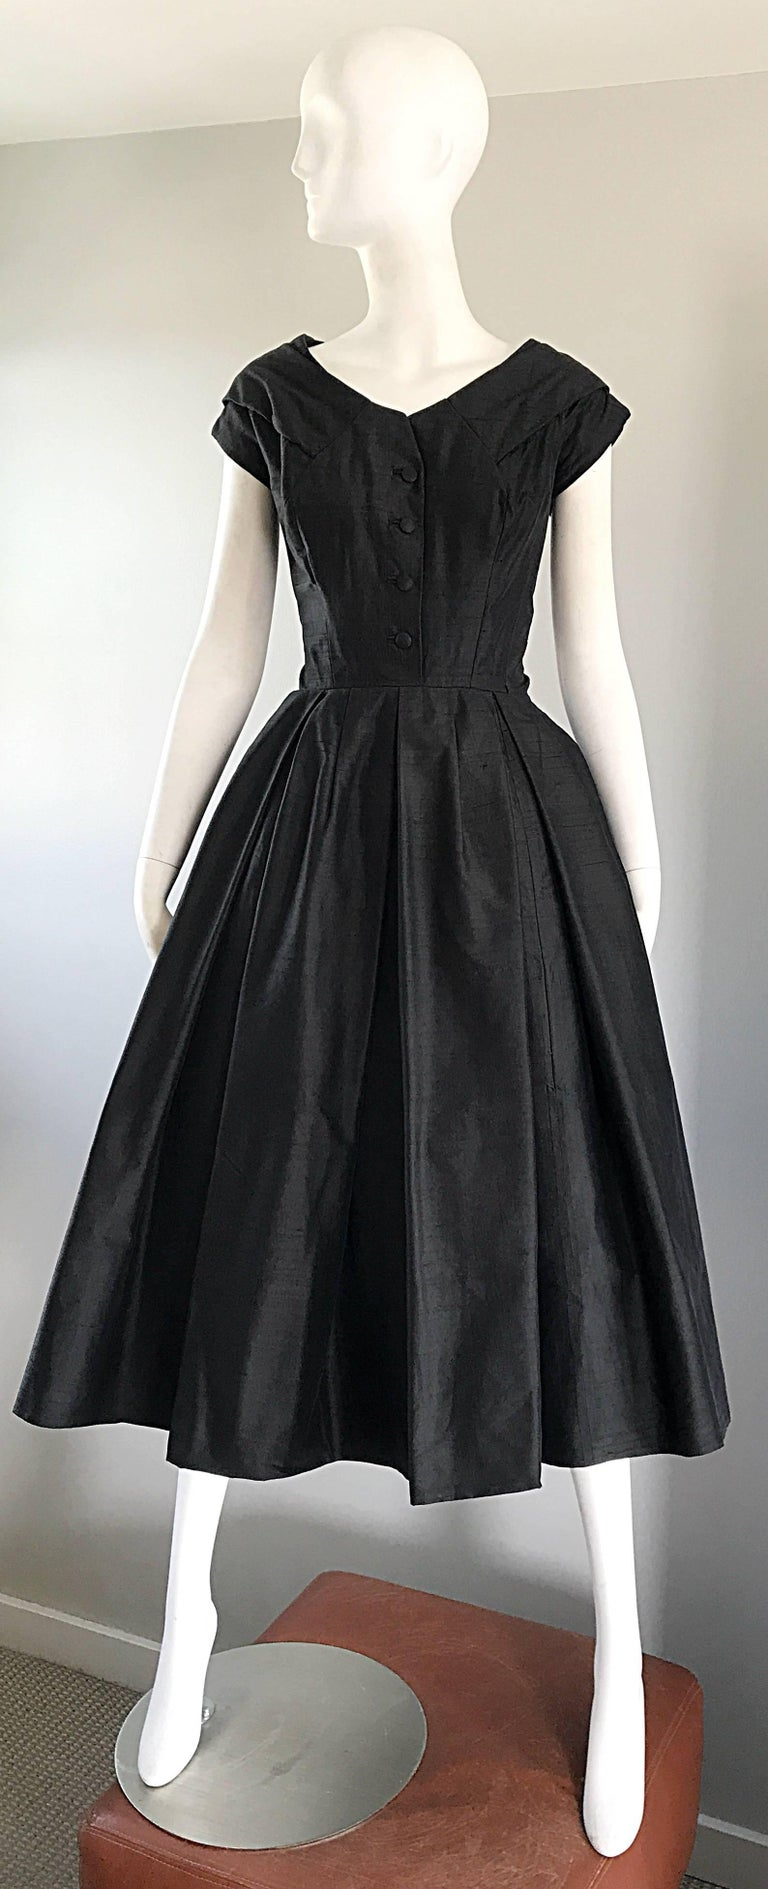 Rare 1950s Christian Dior Haute Couture ' New Look ' Vintage Black Silk Dress 9